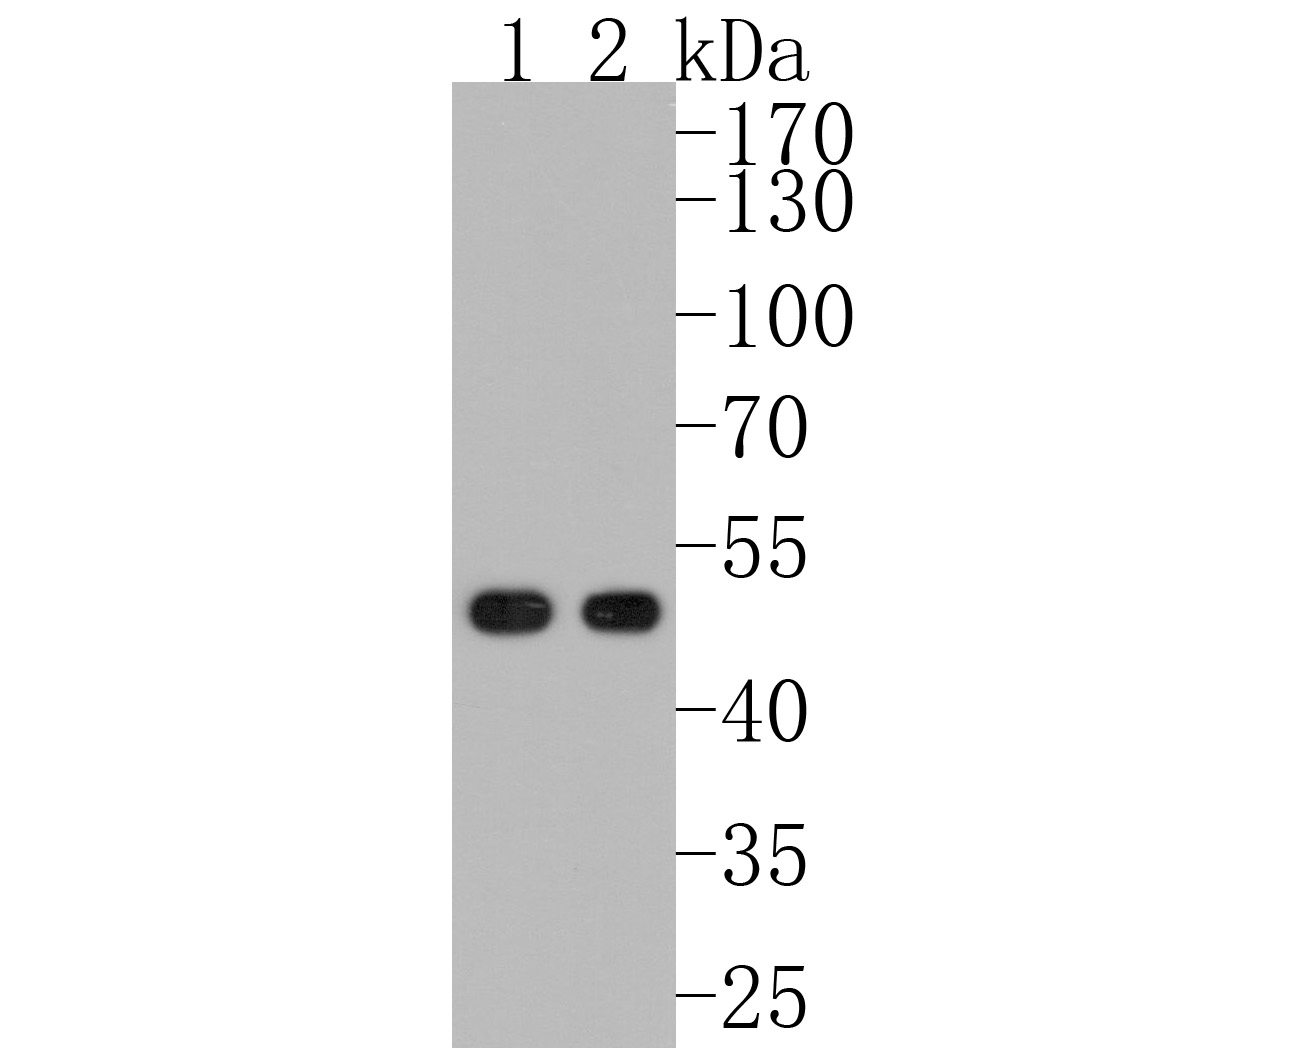 Western blot analysis of MEIS1 on human skeletal muscle (1) and mouse brain (2) tissue lysate using anti-MEIS1 antibody at 1/1,000 dilution.